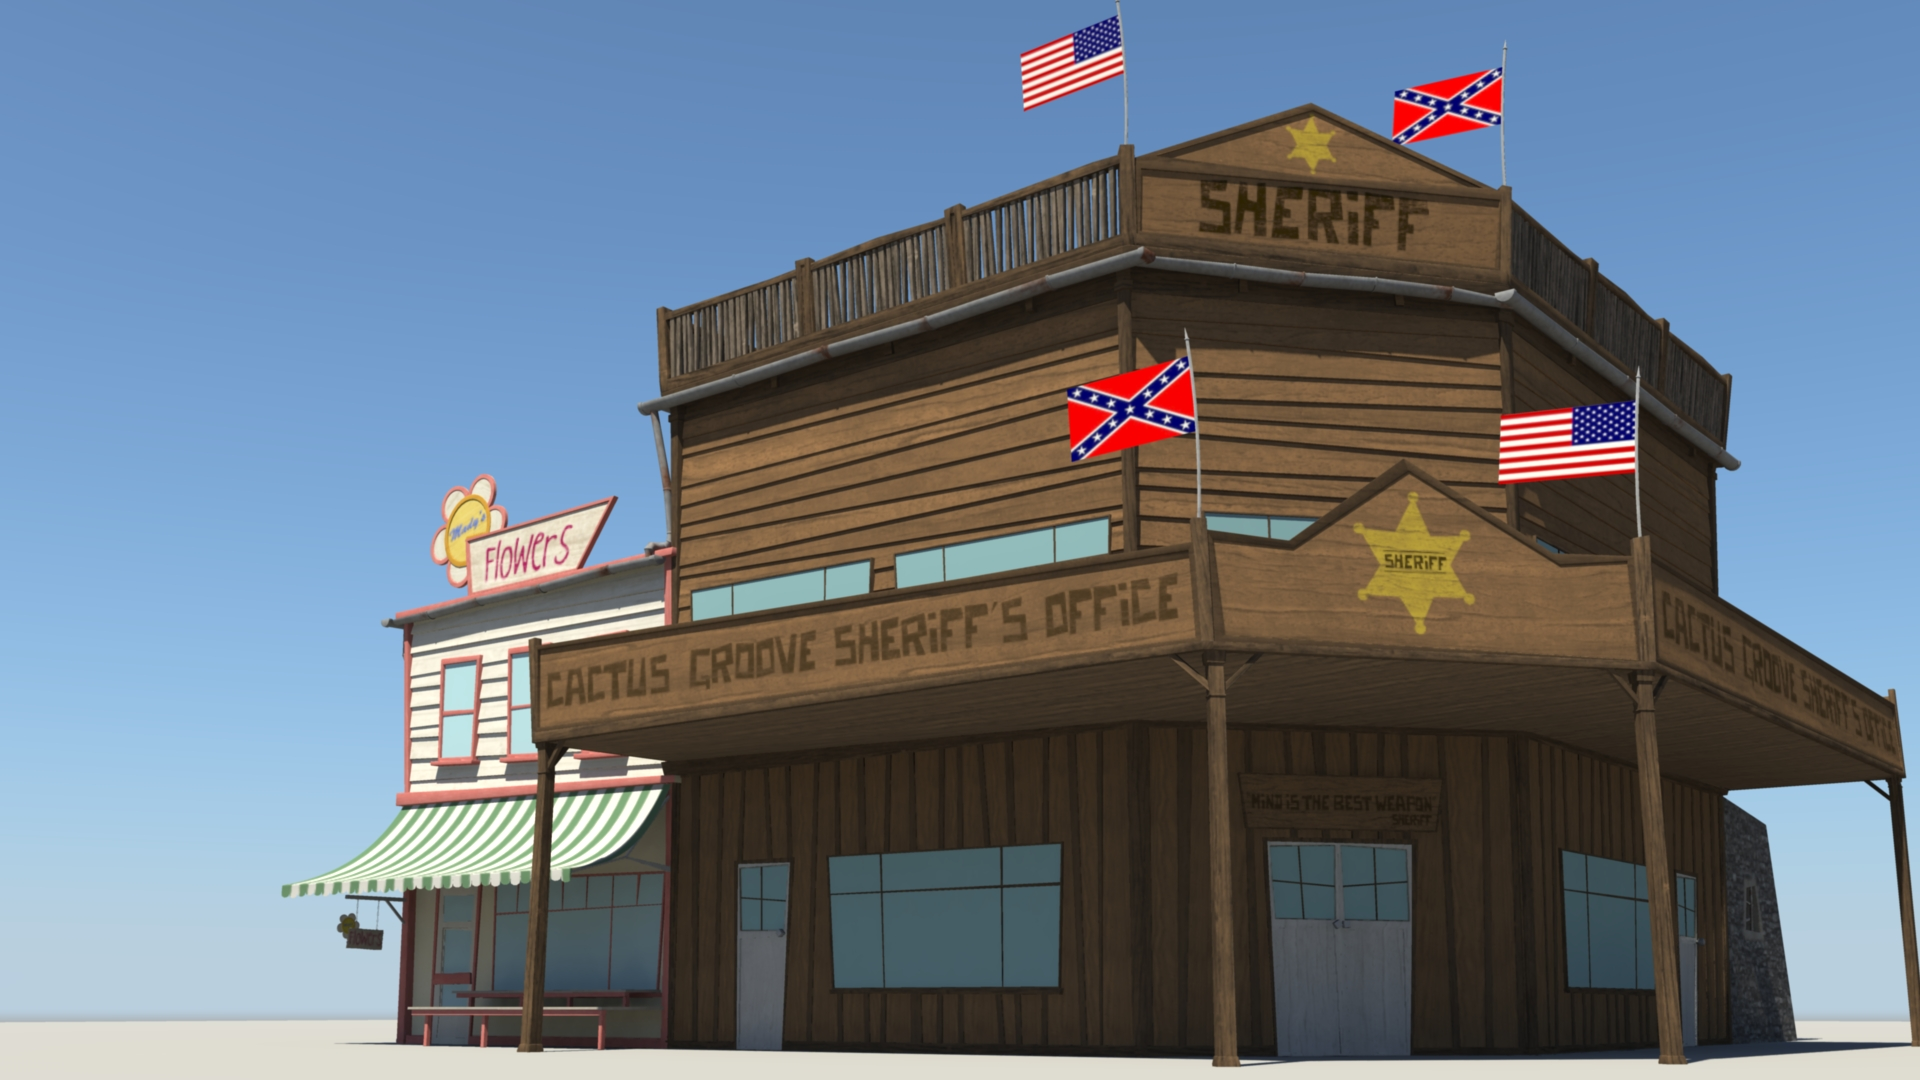 sheriff.jpeg